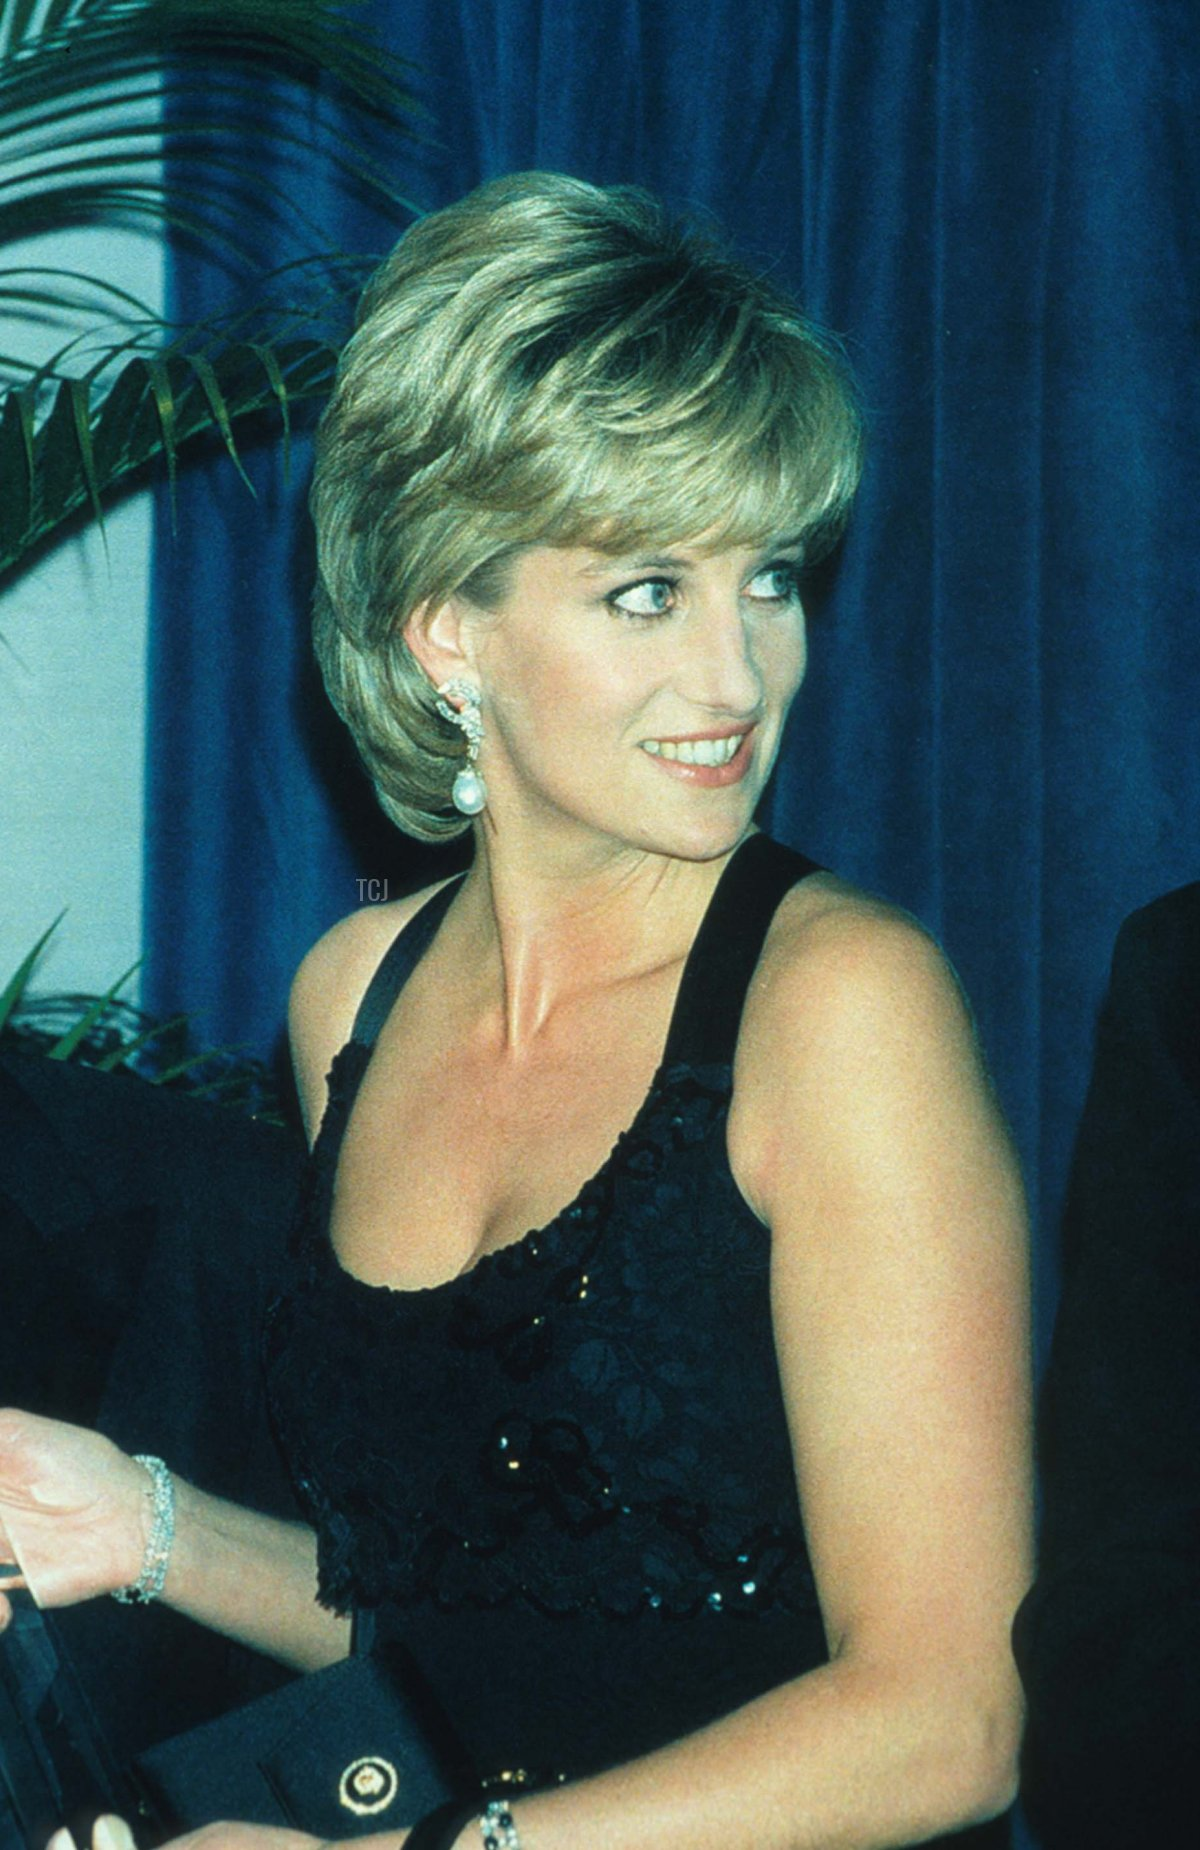 Lady Diana Spencer stands at the 41st annual United Cerebral Palsy Awards gala December 11, 1995 in New York City. Lady Diana, the Princess of Wales, received the UCP Humanitarian Award at the fundraising evening